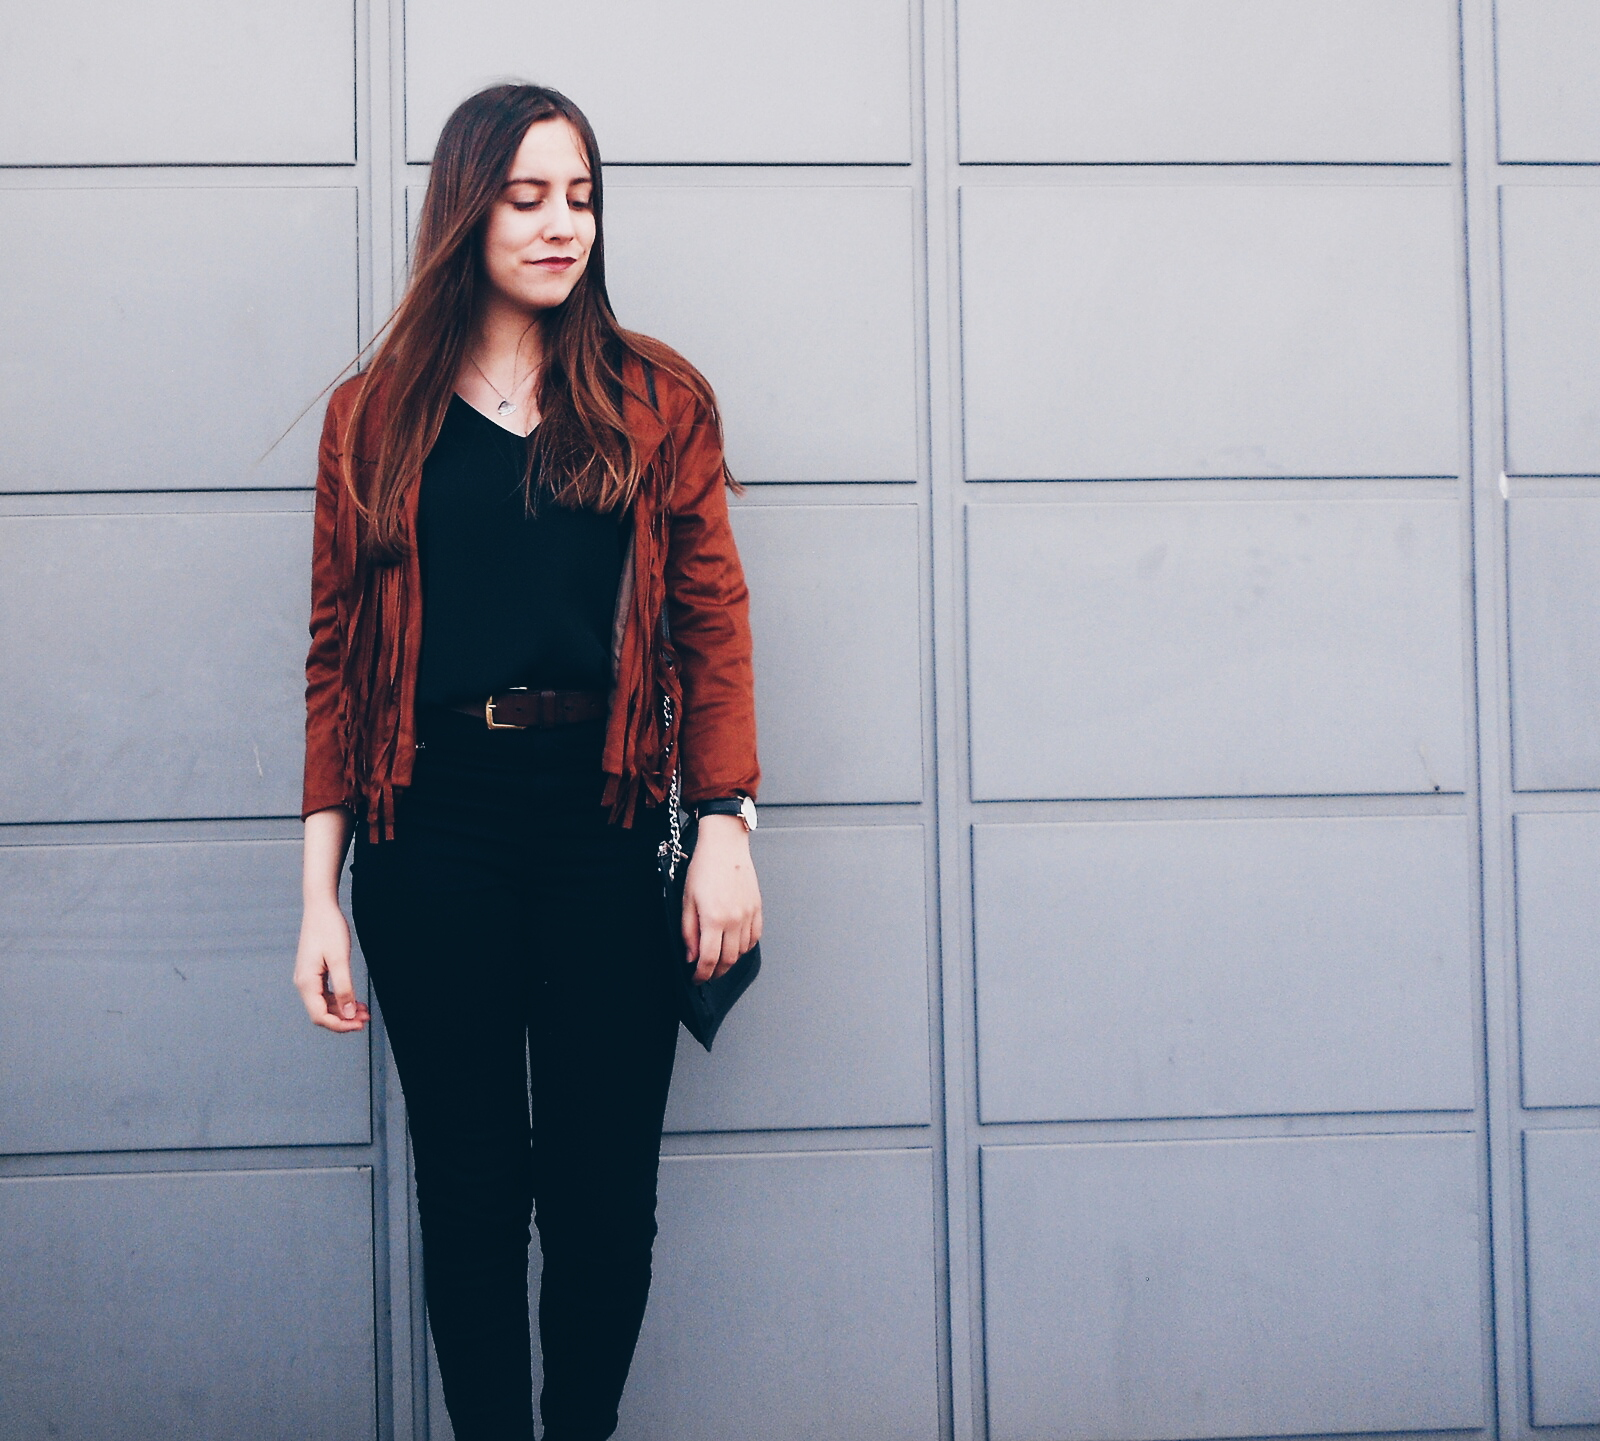 outfit | Fringed jacket from NewChic